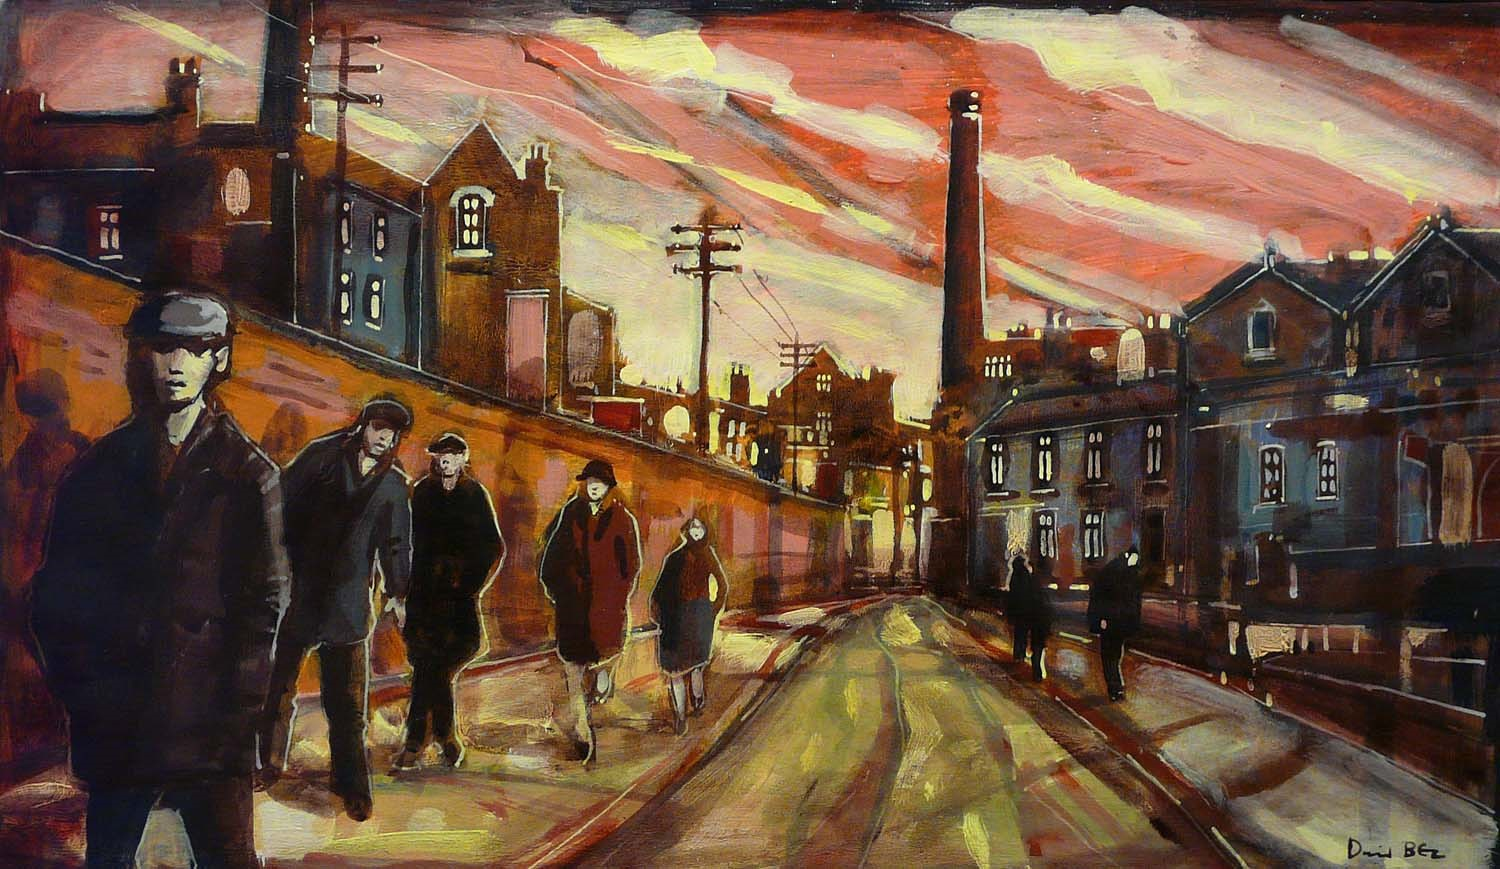 Streets of Gold by David Bez, Northern | Landscape